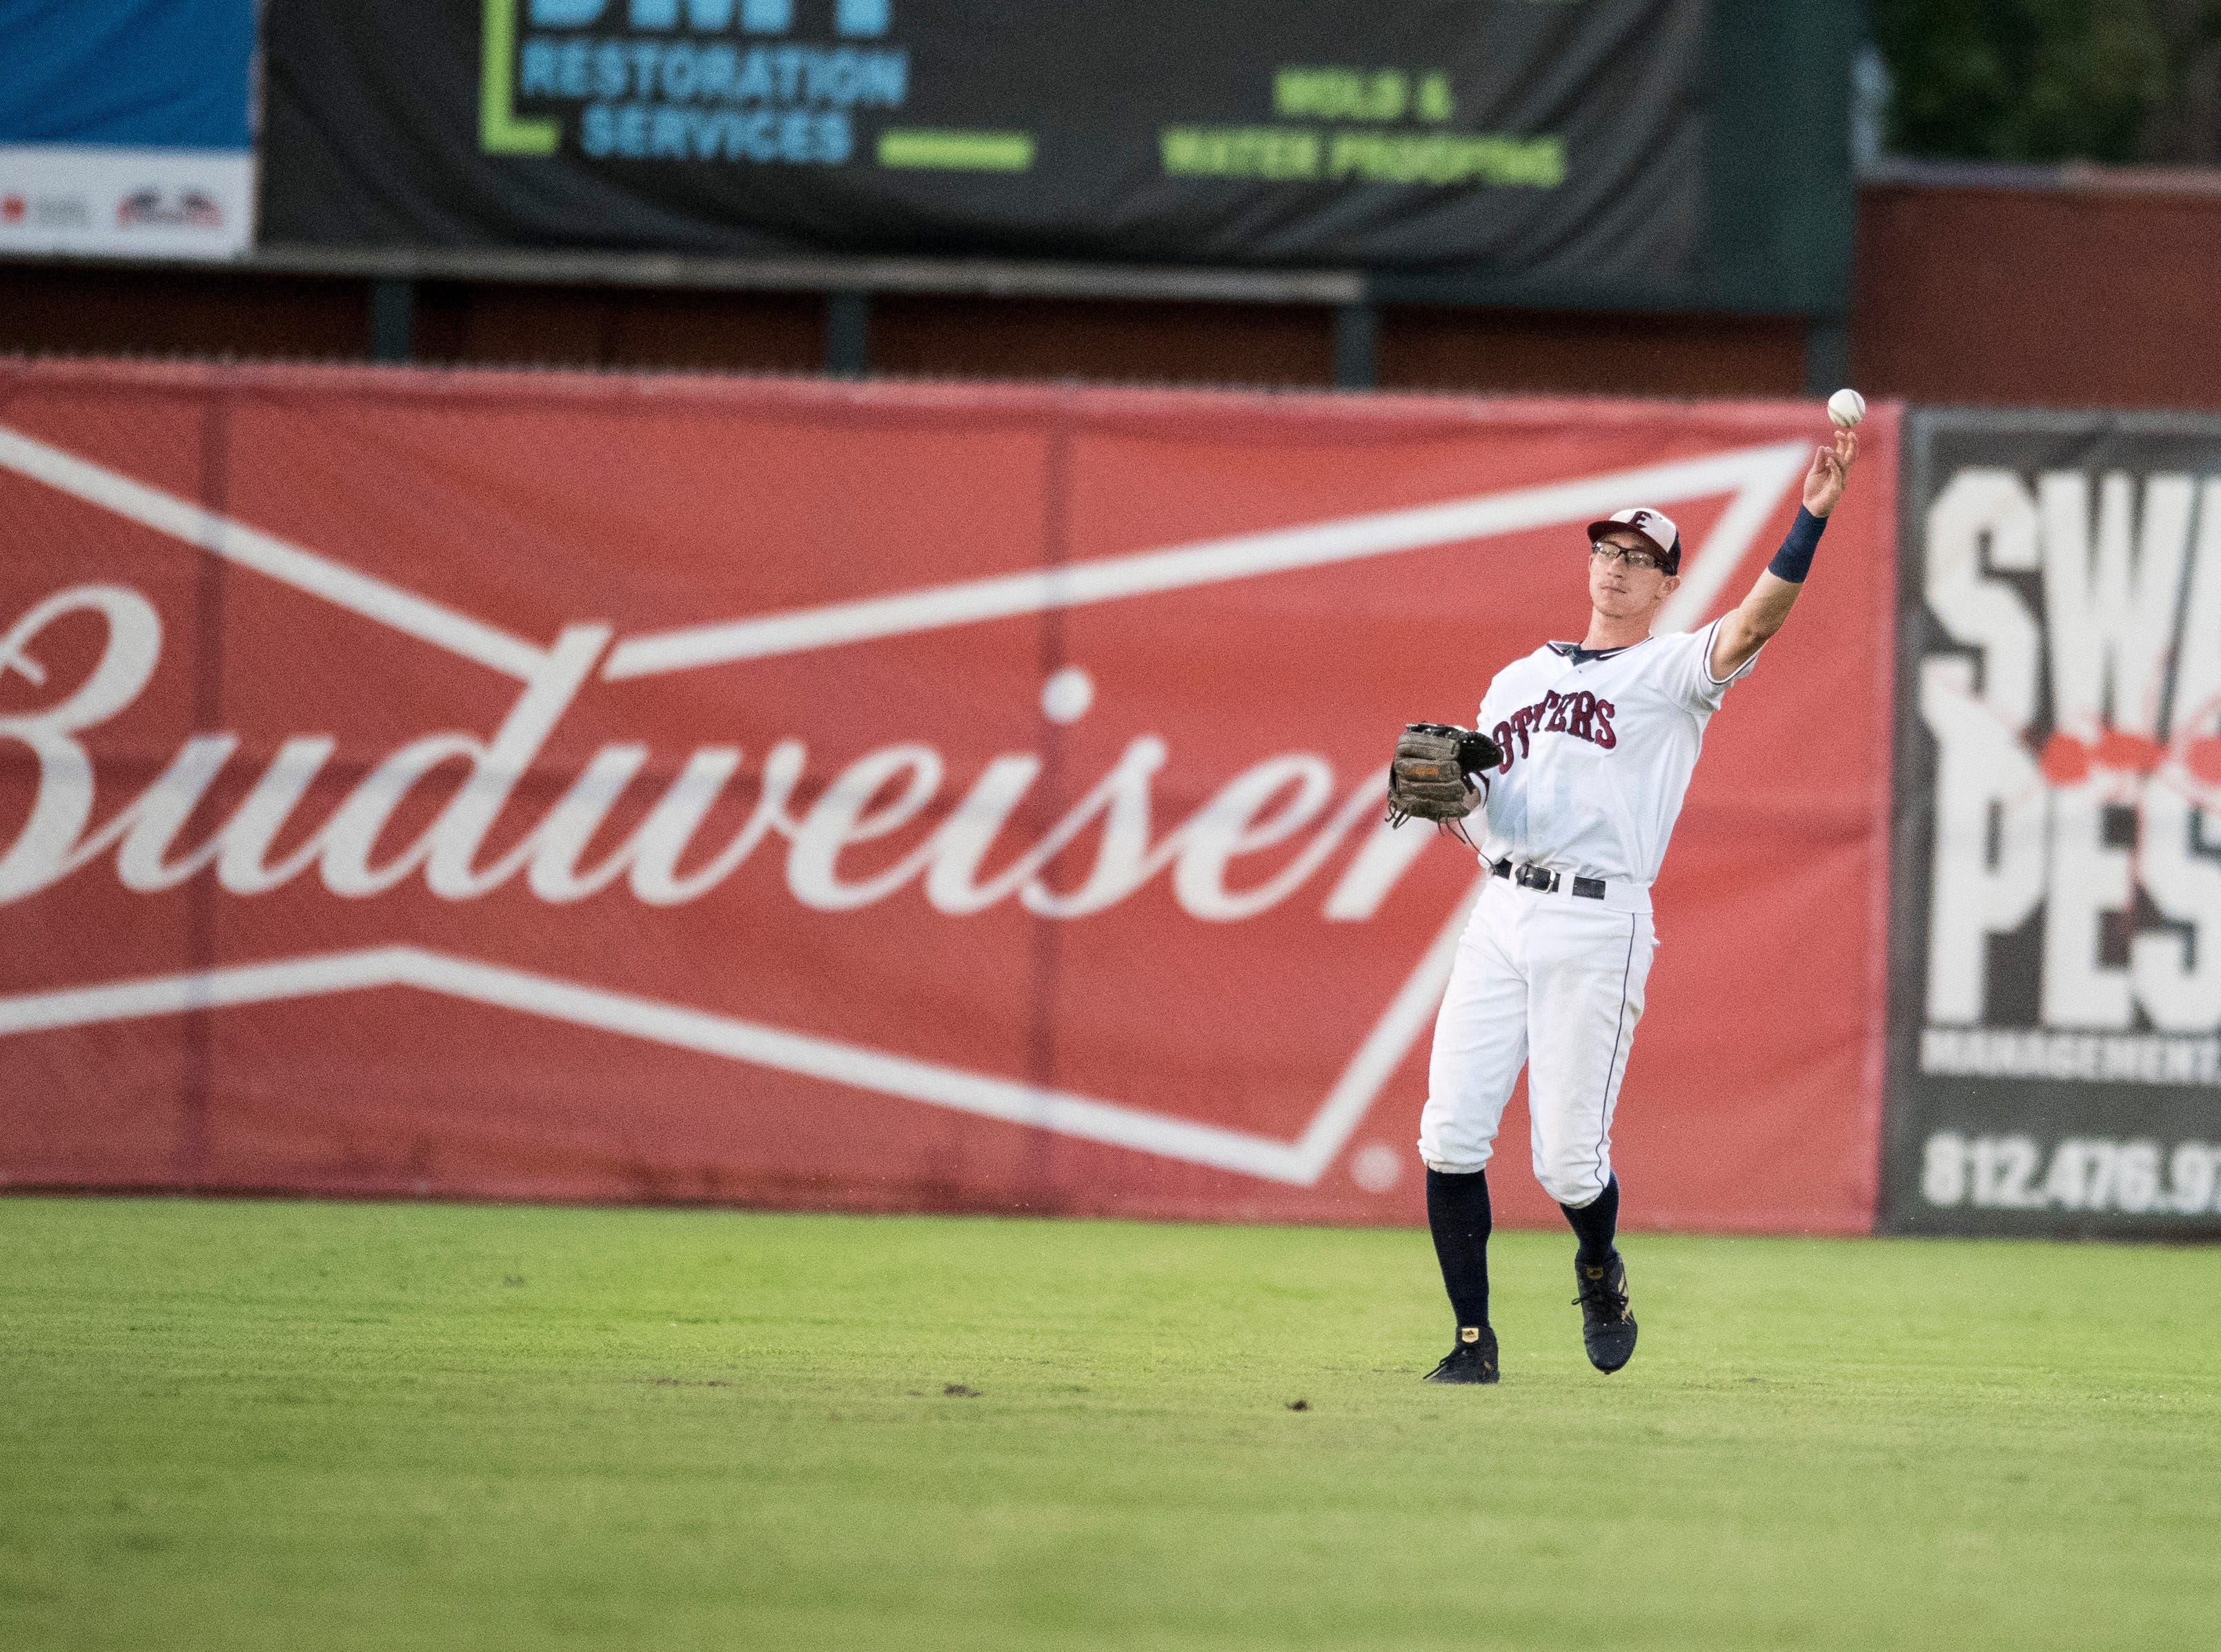 Evansville's Hunter Cullen (43) throws the ball in after catching a pop fly in the second inning during game one of the Frontier League Division Series at Bosse Field against the Washington Wild Things Tuesday, September 4, 2018.